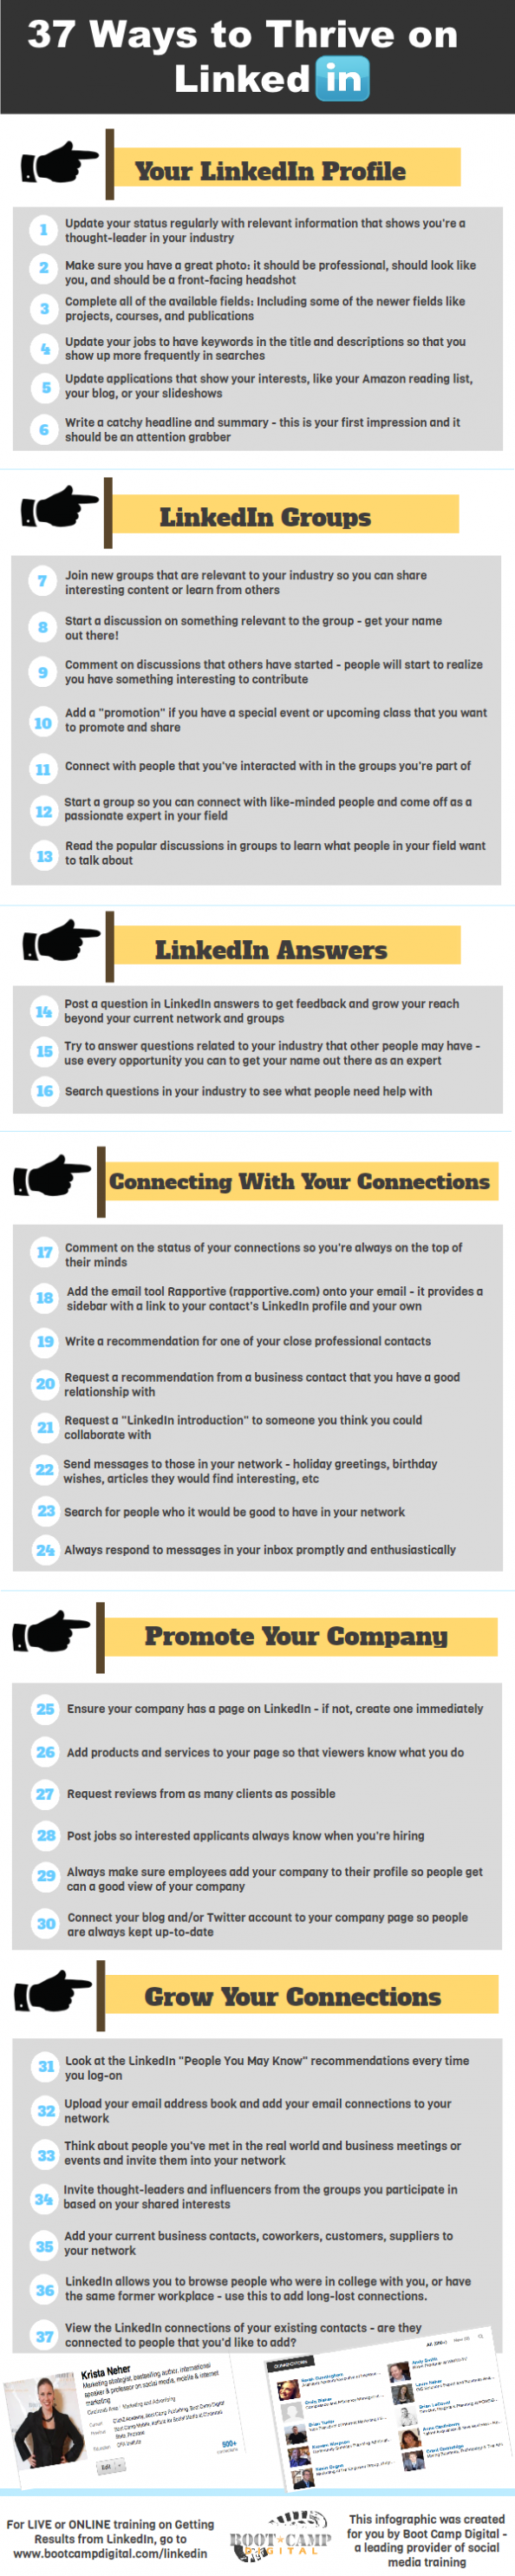 37 Ways to Thrive on LinkedIn Infographic